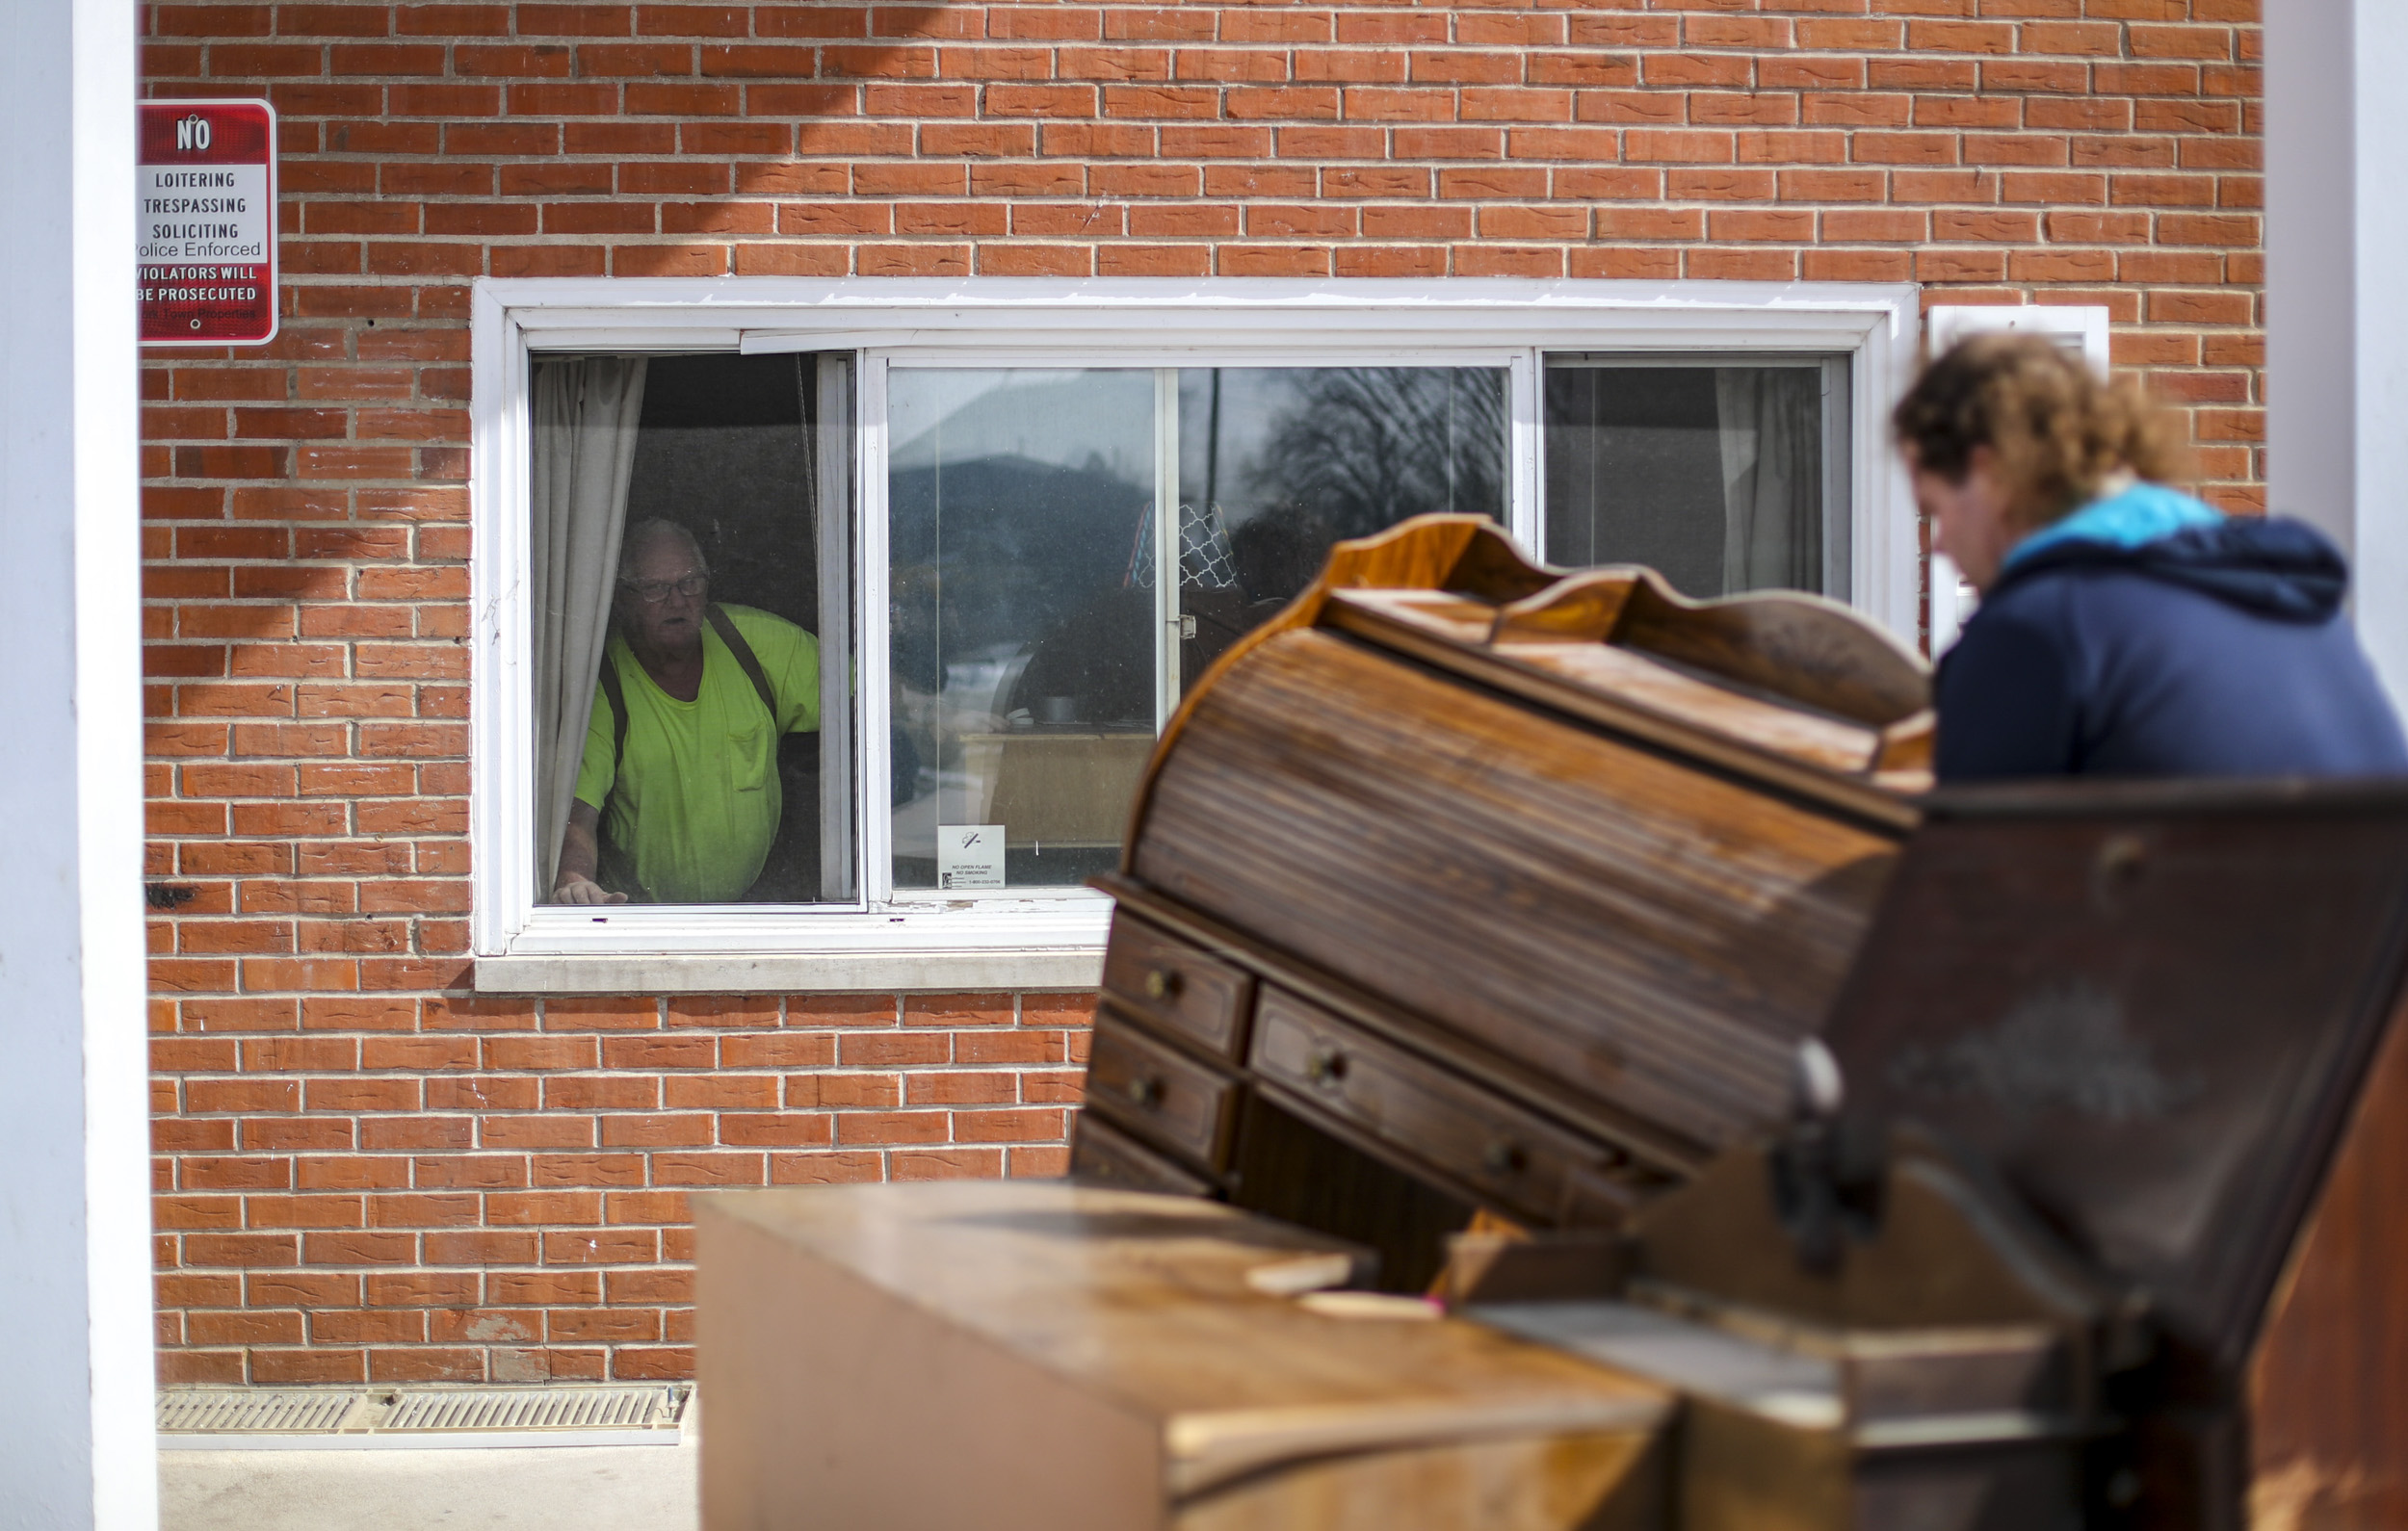 Charles Ray, left, yells to his son, John Ray, as the younger Ray moves a desk onto a trailer in Davenport, Wednesday, March 6, 2019. The elder Ray was forced to leave his apartment of 16 years by March 8 under an order by the city of Davenport.